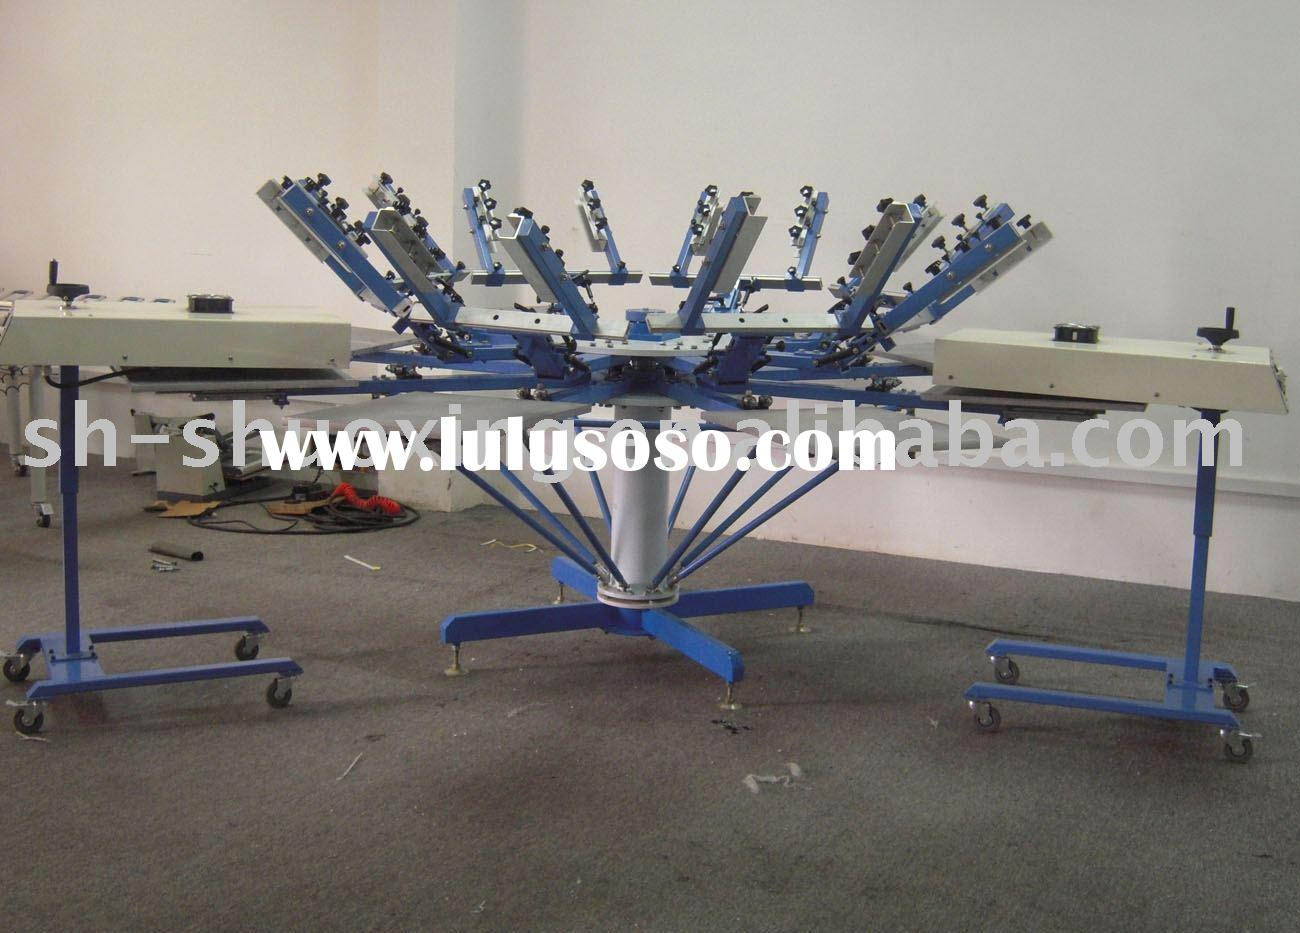 Manual t-shirt presses, manual textile screen printing machine,garment screen printer